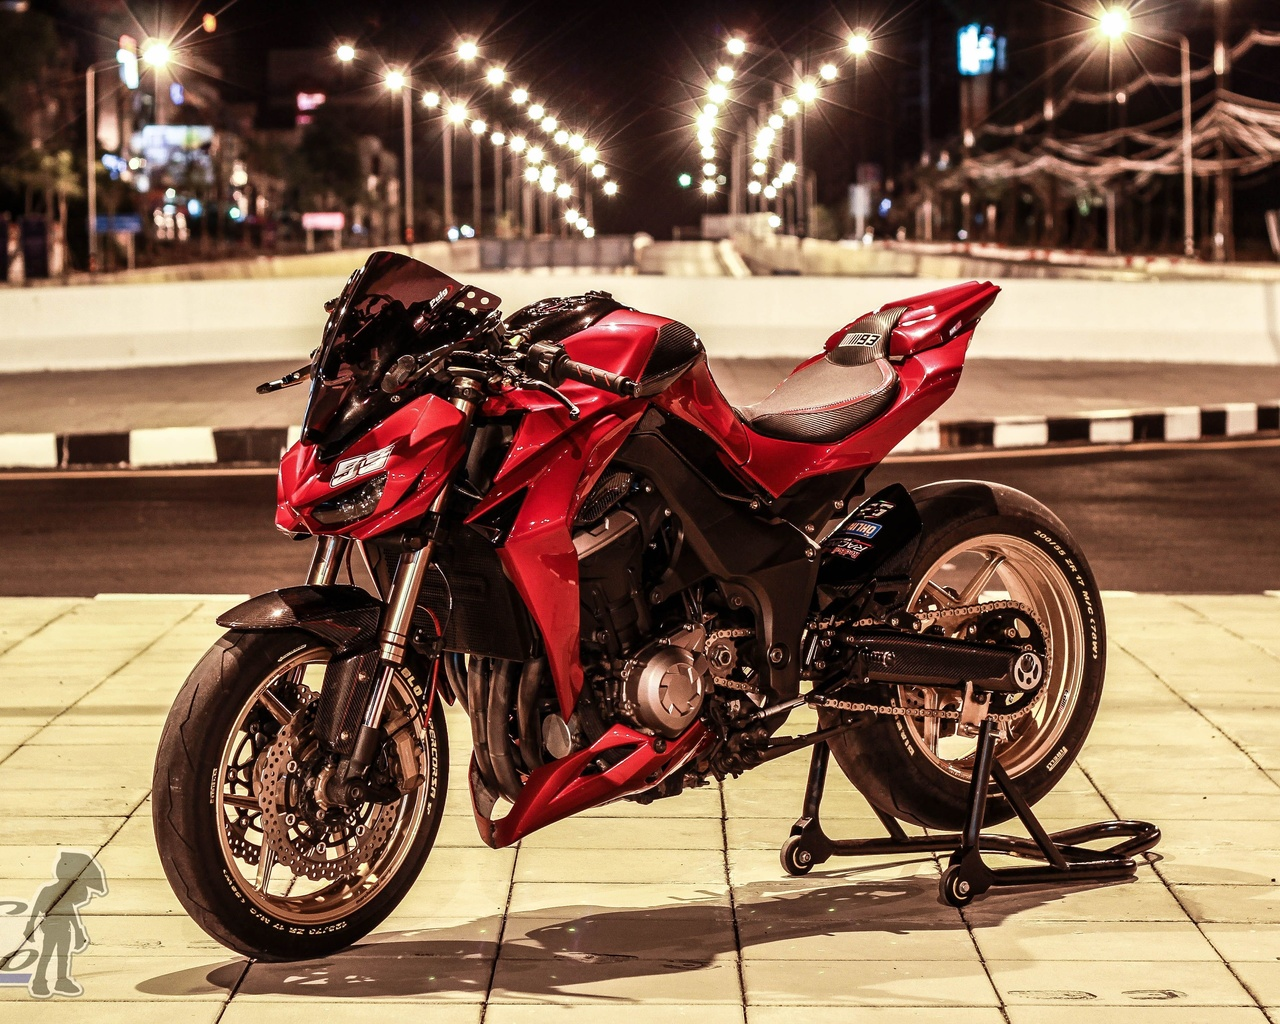 710, best, kawasaki, z1000, images in, 2020, motorcycle, motorbikes